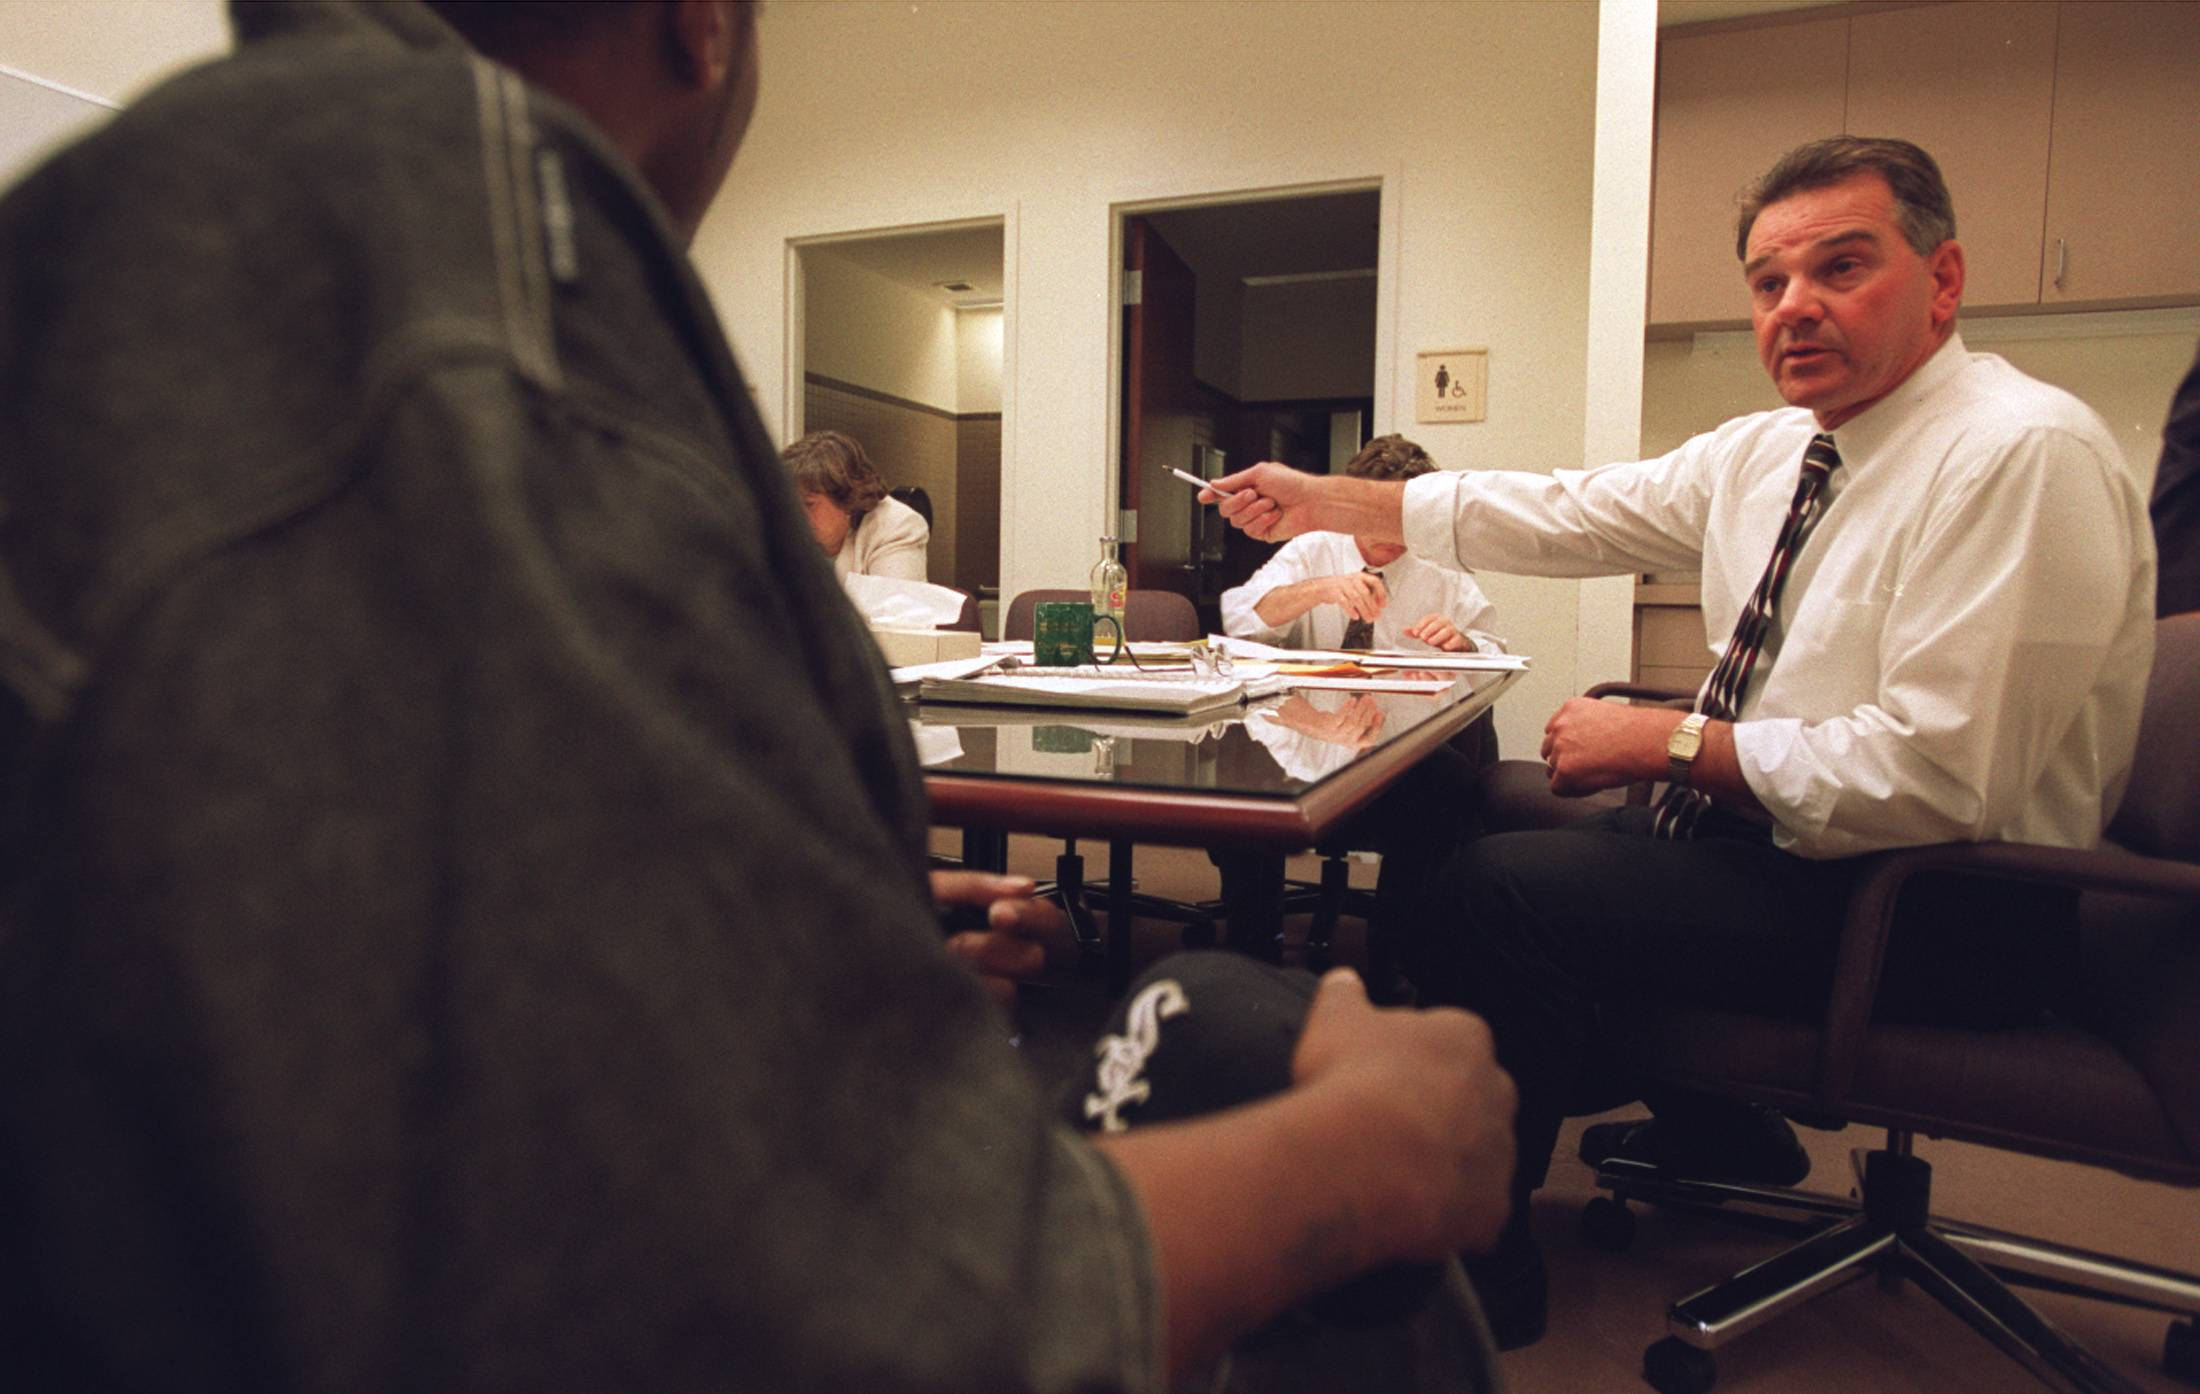 Judge takes some unusual steps to help rehabilitate drug users